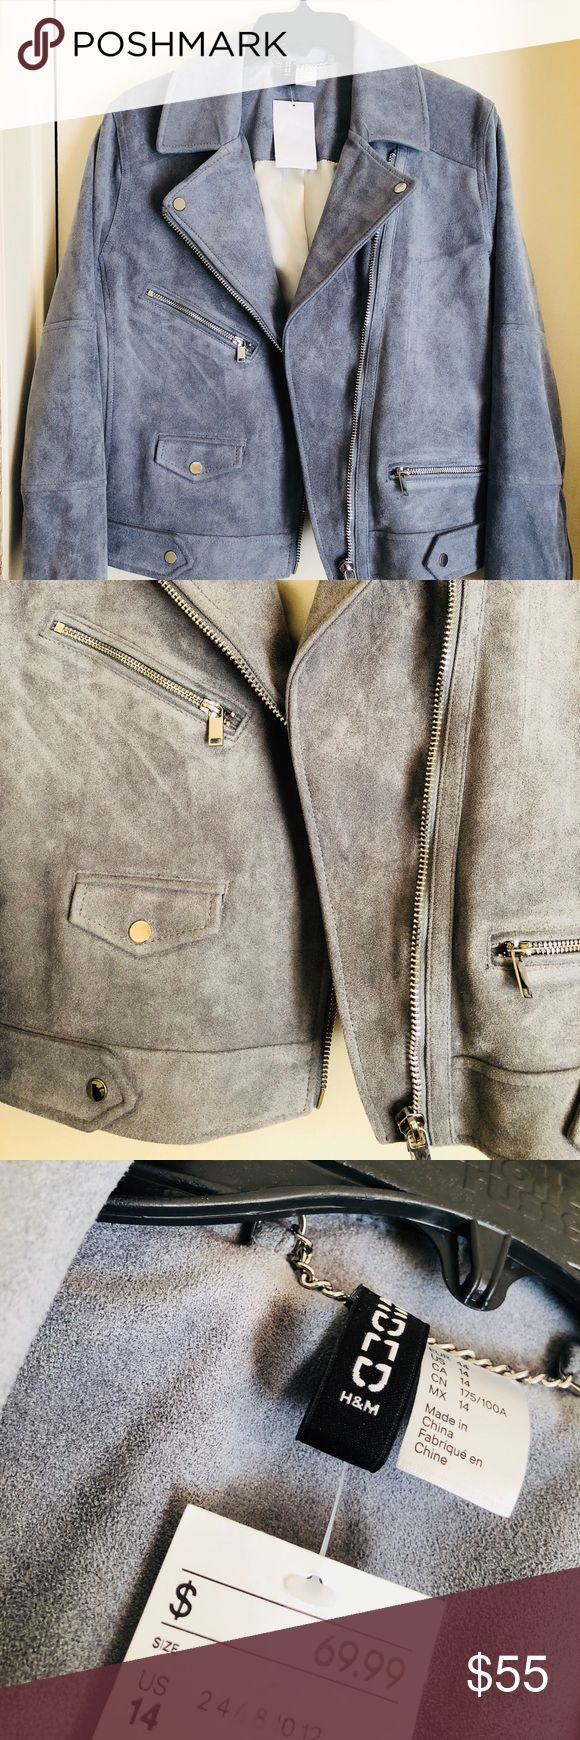 Medium Blue/ Gray Suede H&M Biker Jacket Brand new never worn with tags medium blue/gray suede H&M biker jacket! Awesome gem to find! Perfect for the fall/winter weather! Can be paired with a casual or formal outfit! Even though it is a size 14 it does run more so on the smaller side so I think it would somebody that is a true size 8 or 10! #hm #bikerjacket #fashiontrending #stylish2017 #gift #giftyourself #xmaaspresent #warm H&M Jackets & Coats